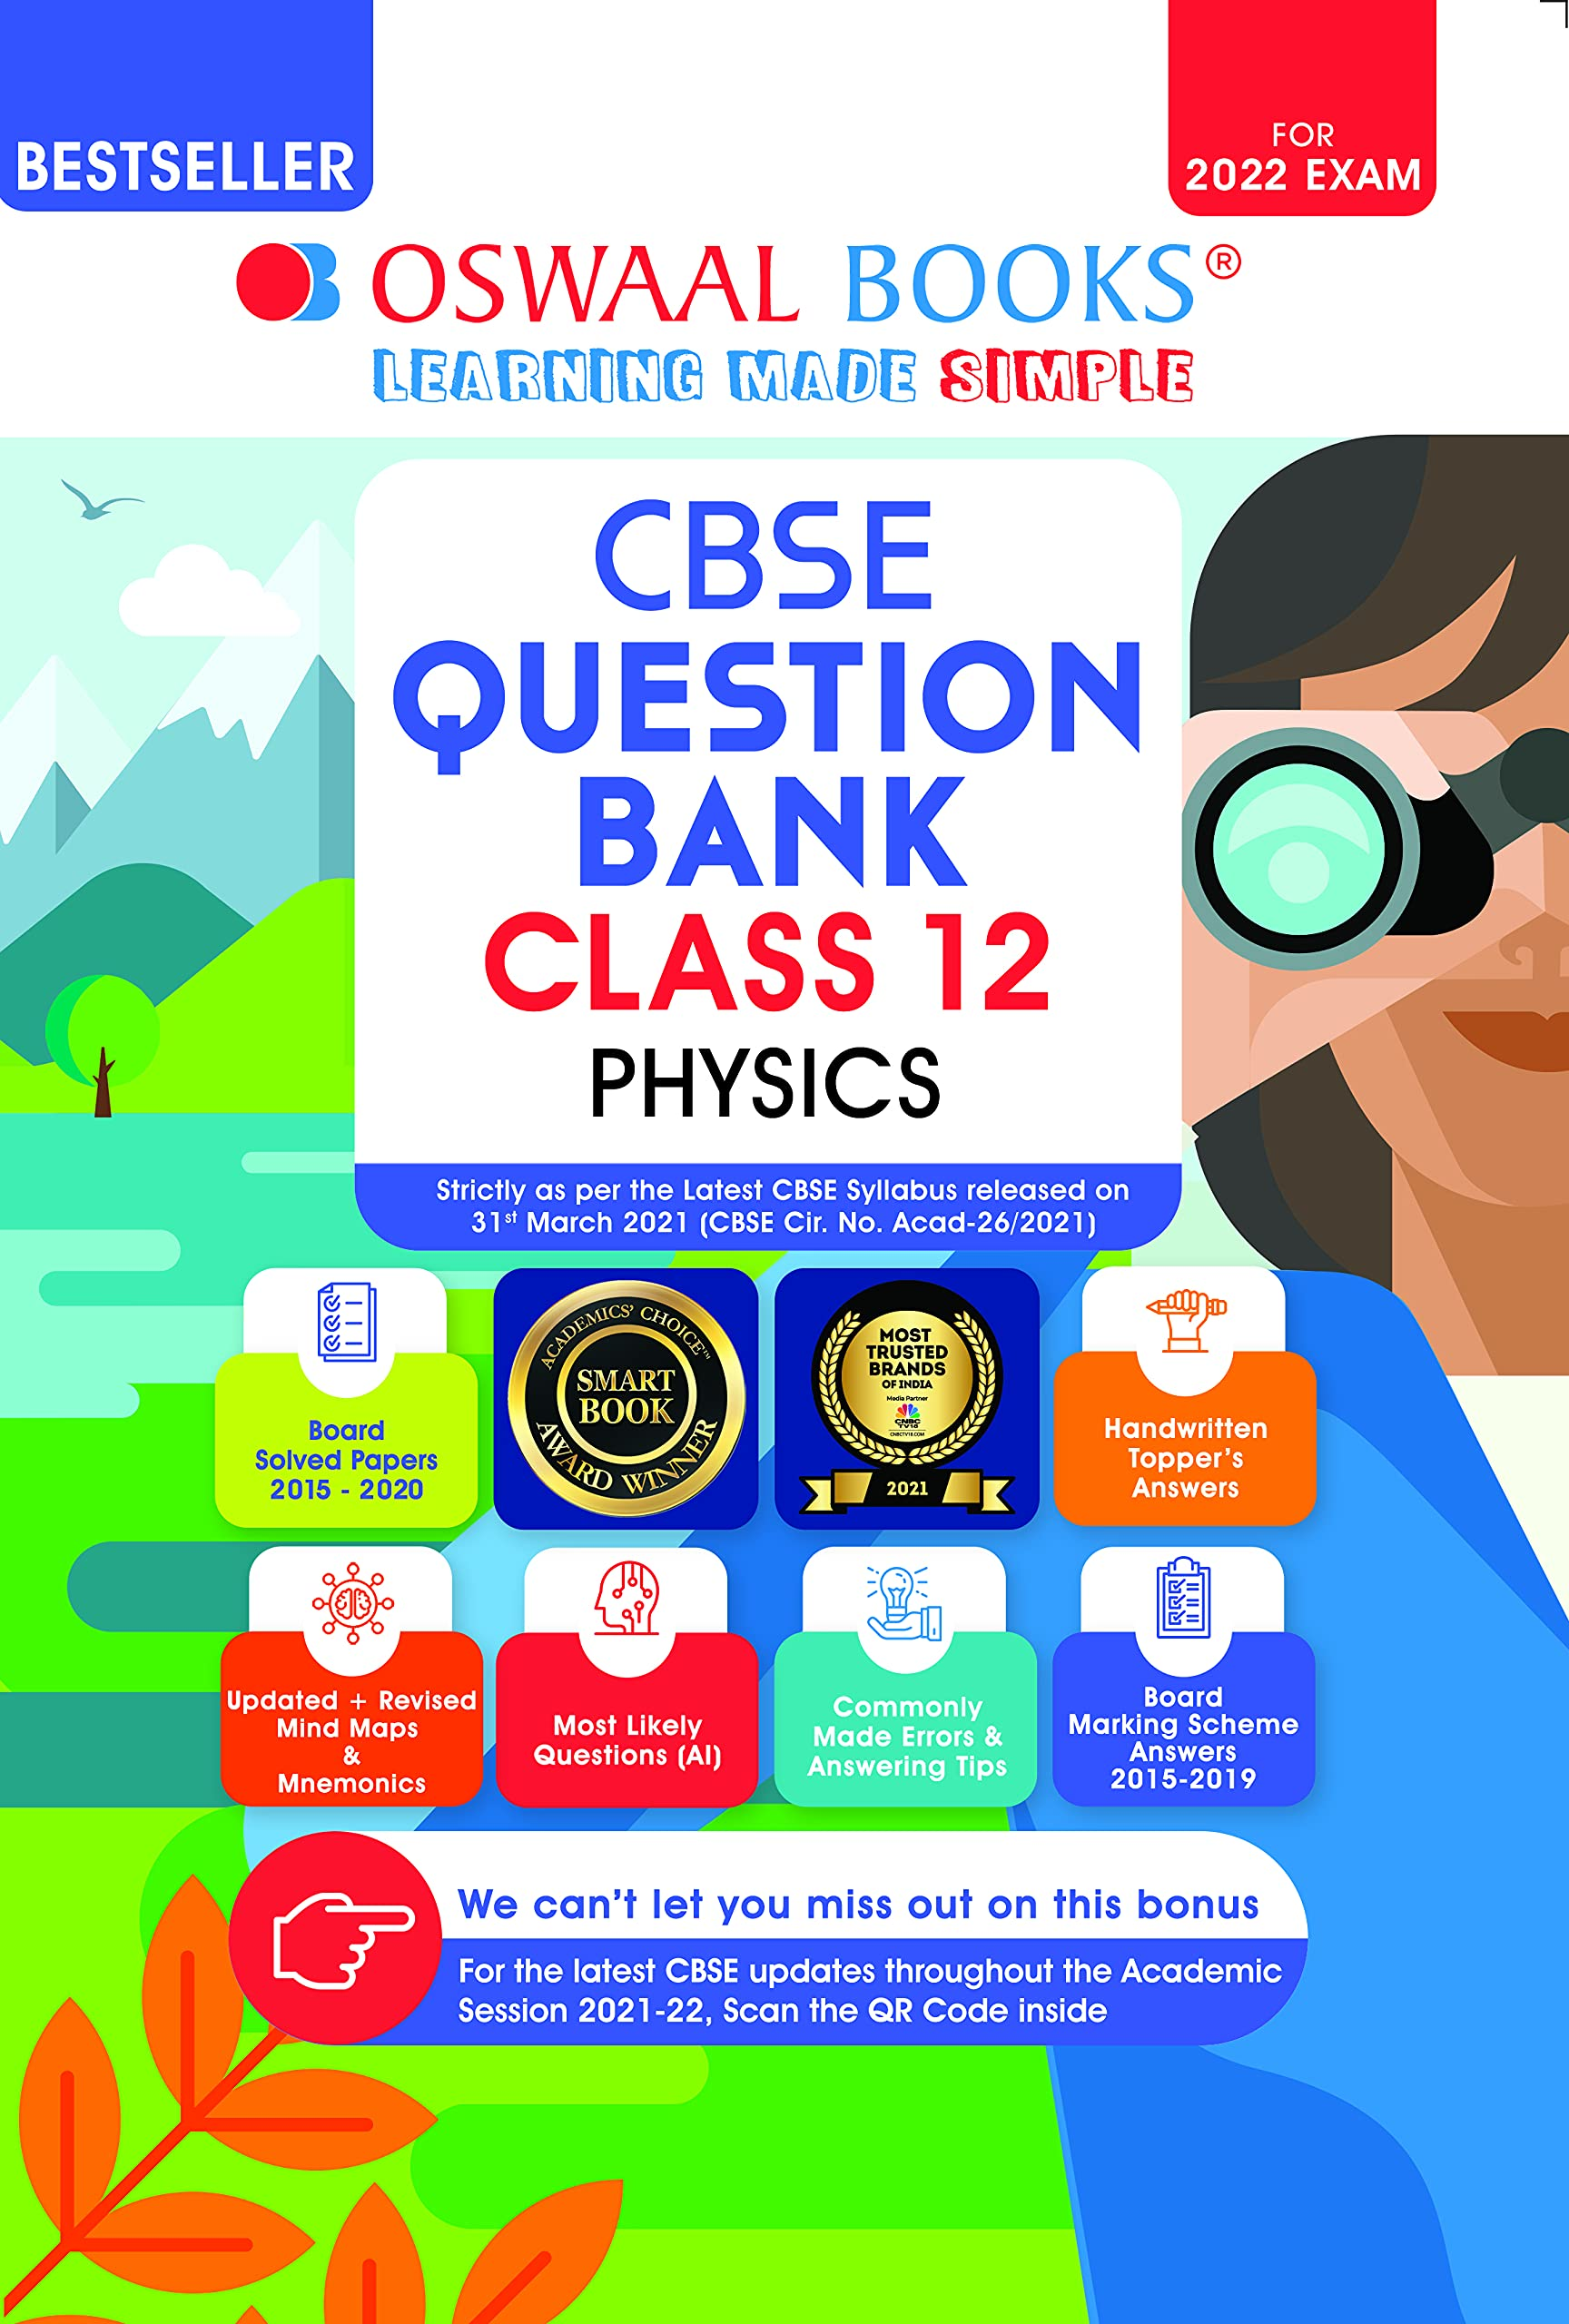 Oswaal CBSE Question Bank Class 12 Physics Book Chapterwise & Topicwise Includes Objective Types & MCQ's (For 2022 Exam) Paperback – 29 April 2021